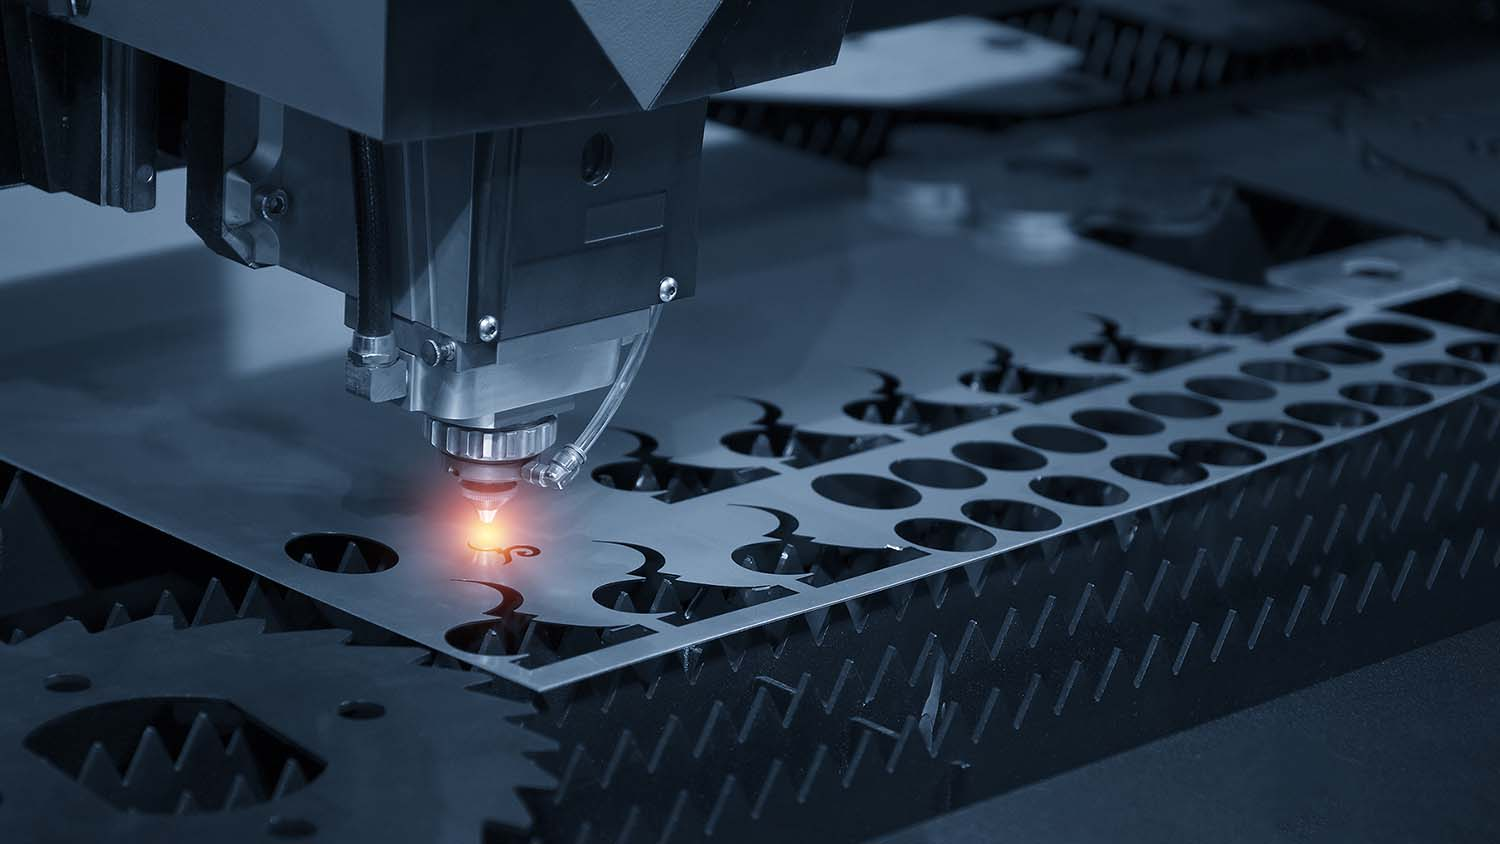 The CNC laser cut machine while cutting the sheet metal with the